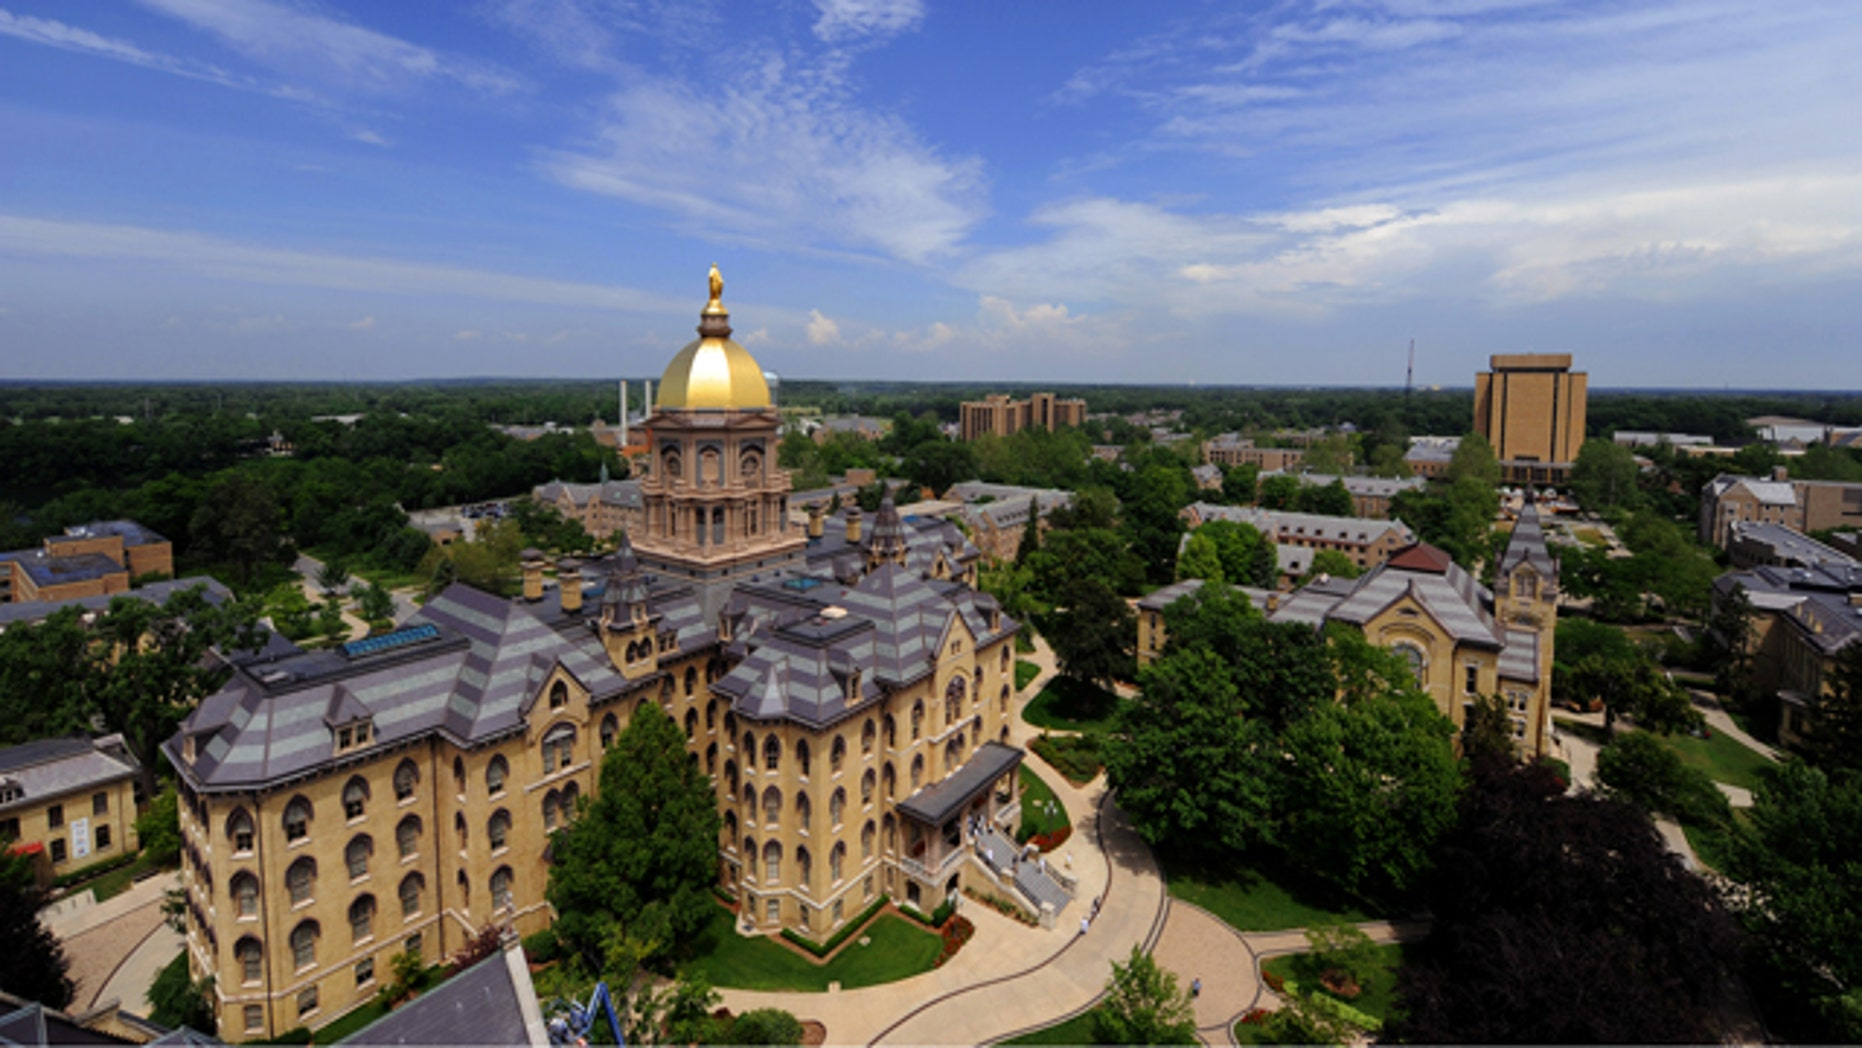 A group of students at the University of Notre Dame advocating traditional marriage have been told their club won't be officially recognized by the school since its purpose mirrors that of other groups on campus. (Matt Cashore/University of Notre Dame)